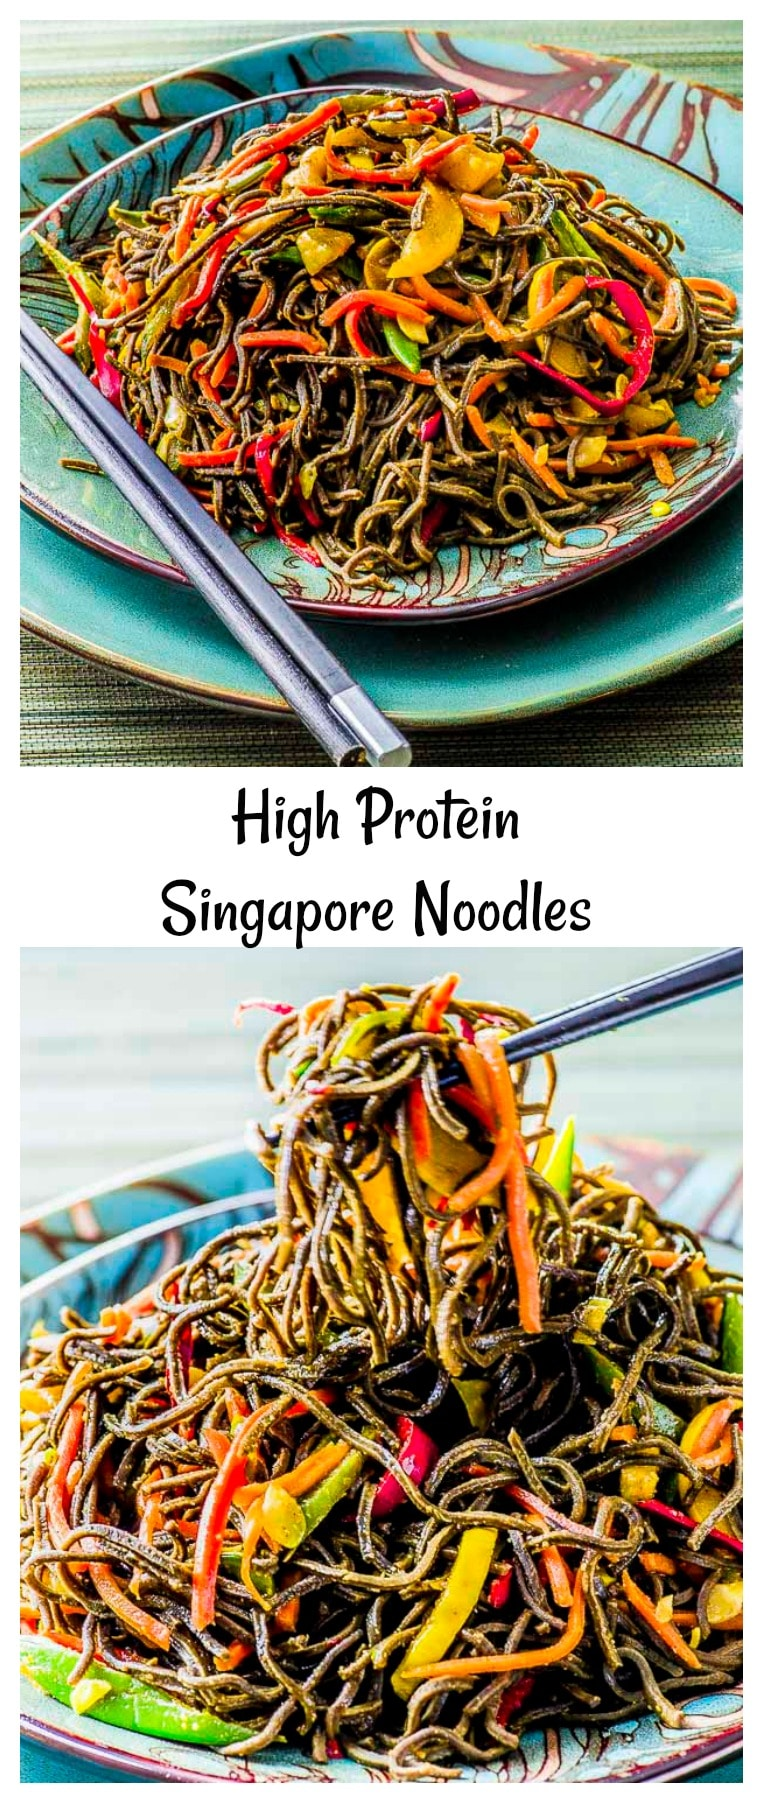 Delicious, exotic, and beautiful -- our recipe for gluten-free Singapore Noodles uses black bean vermicelli-style pasta, curry, and jewel-toned vegetables to create a wonderful interplay between light and dark. #protein #pasta #dinner #black beans #noodles #Sinpagore Noodles #vegan #gluten Free